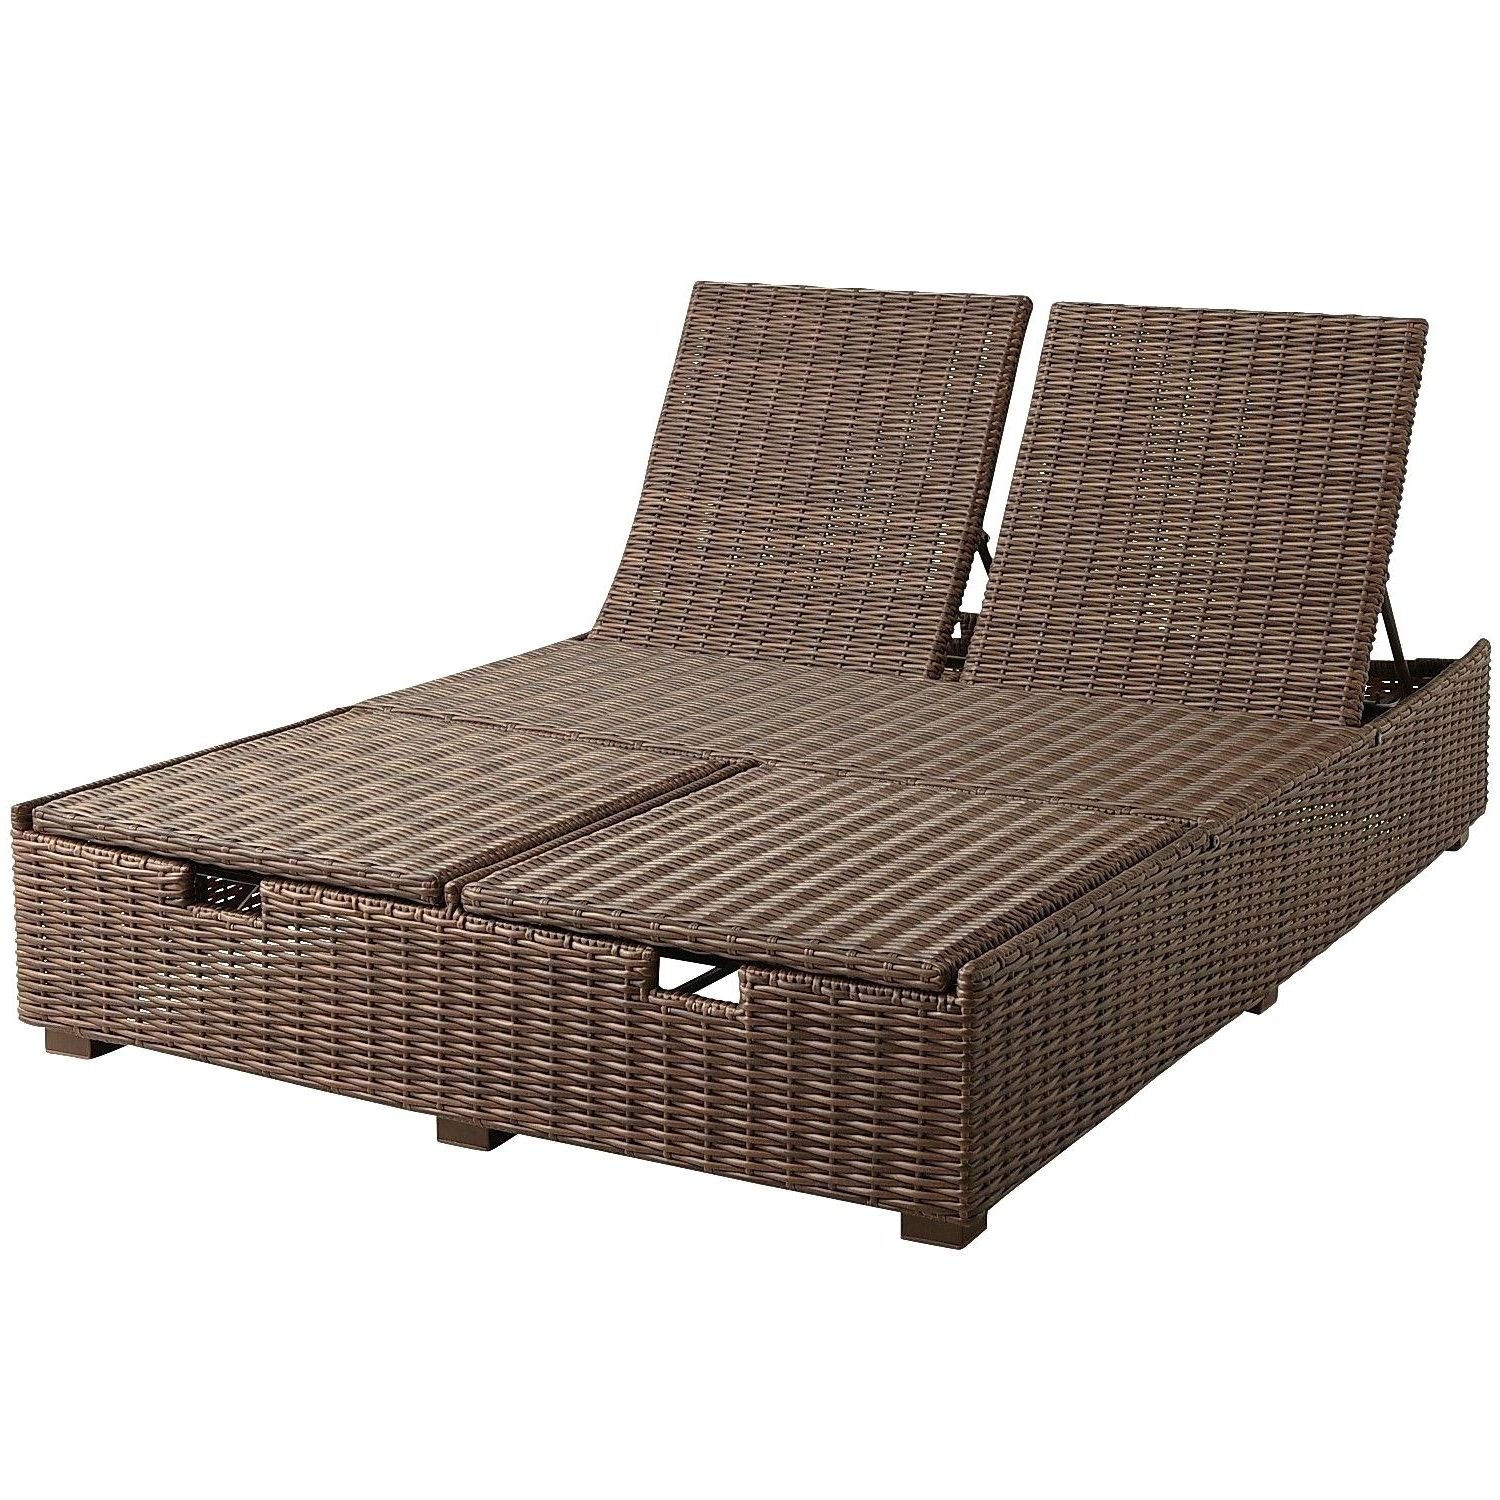 Wide Chaise Lounge Uk Extra Wide Outdoor Chaise Lounge Chairs Wide Within Trendy Extra Wide Outdoor Chaise Lounge Chairs (View 6 of 15)